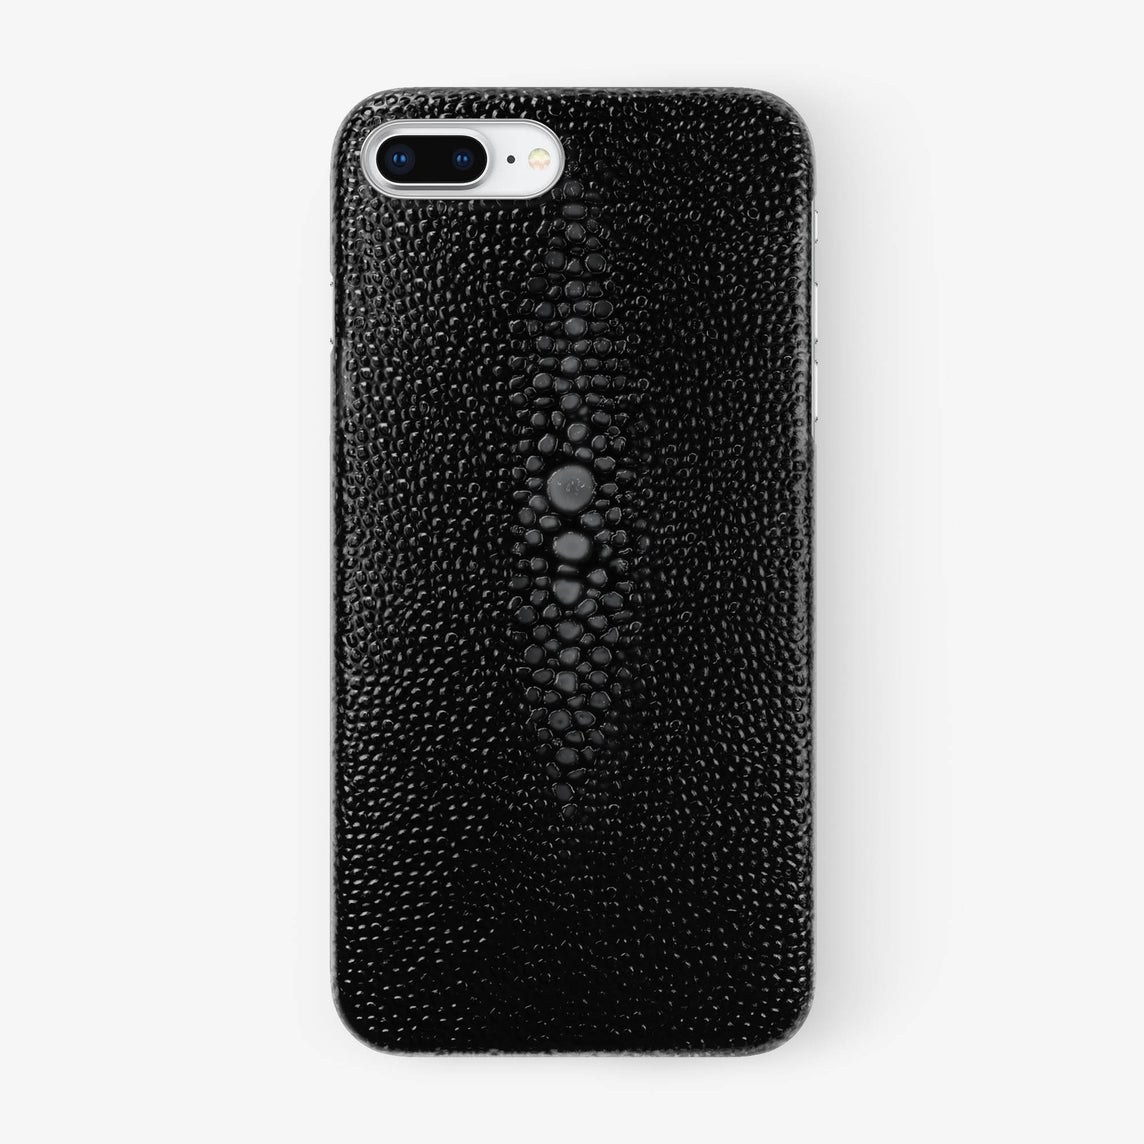 Black Stingray iPhone Case for iPhone 7/8 Plus finishing stainless steel - Hadoro Luxury Cases